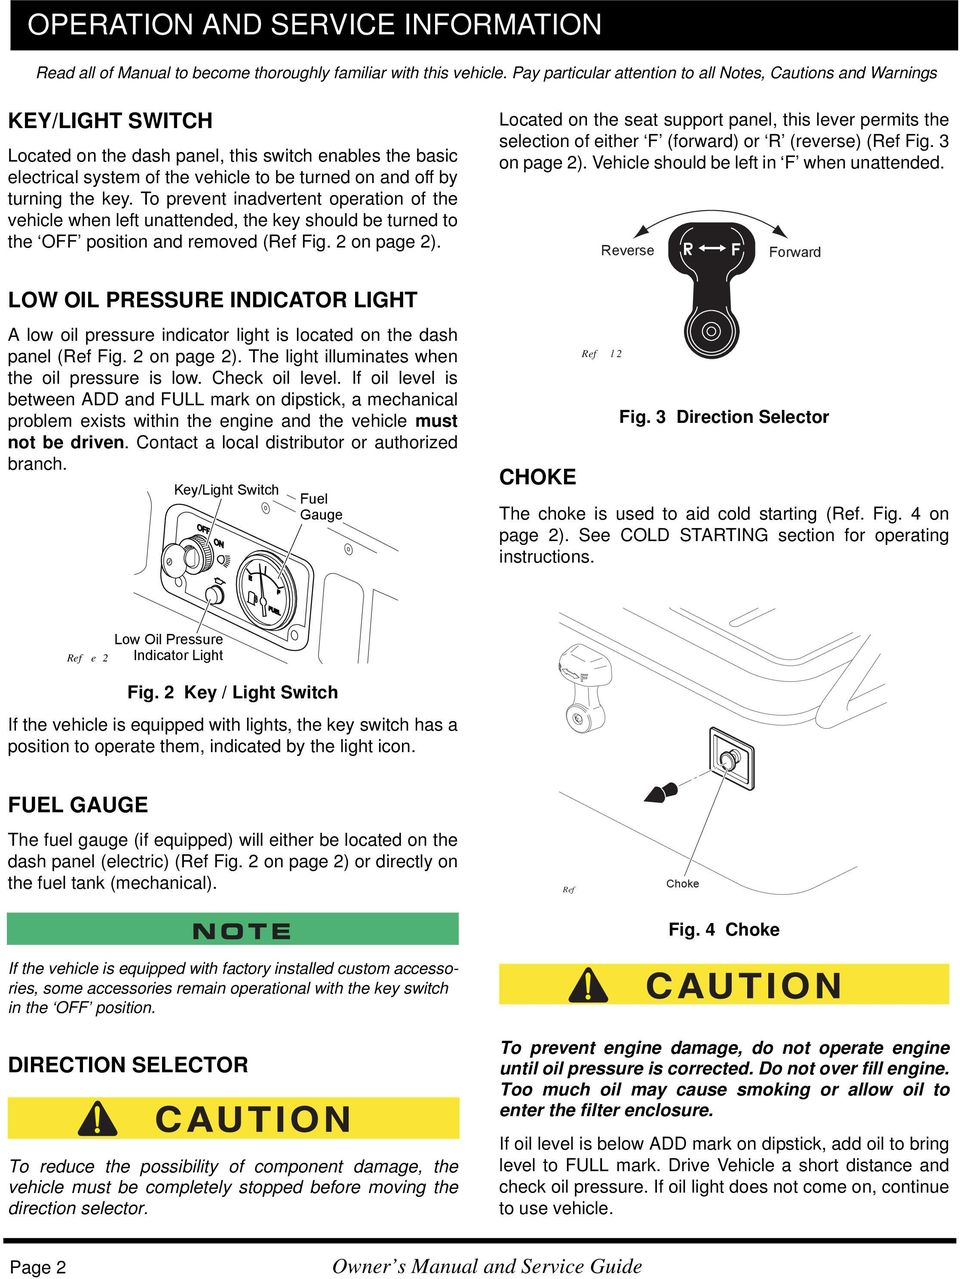 turning the key. To prevent inadvertent operation of the vehicle when left unattended, the key should be turned to the OFF position and removed (Ref Fig. 2 on page 2).